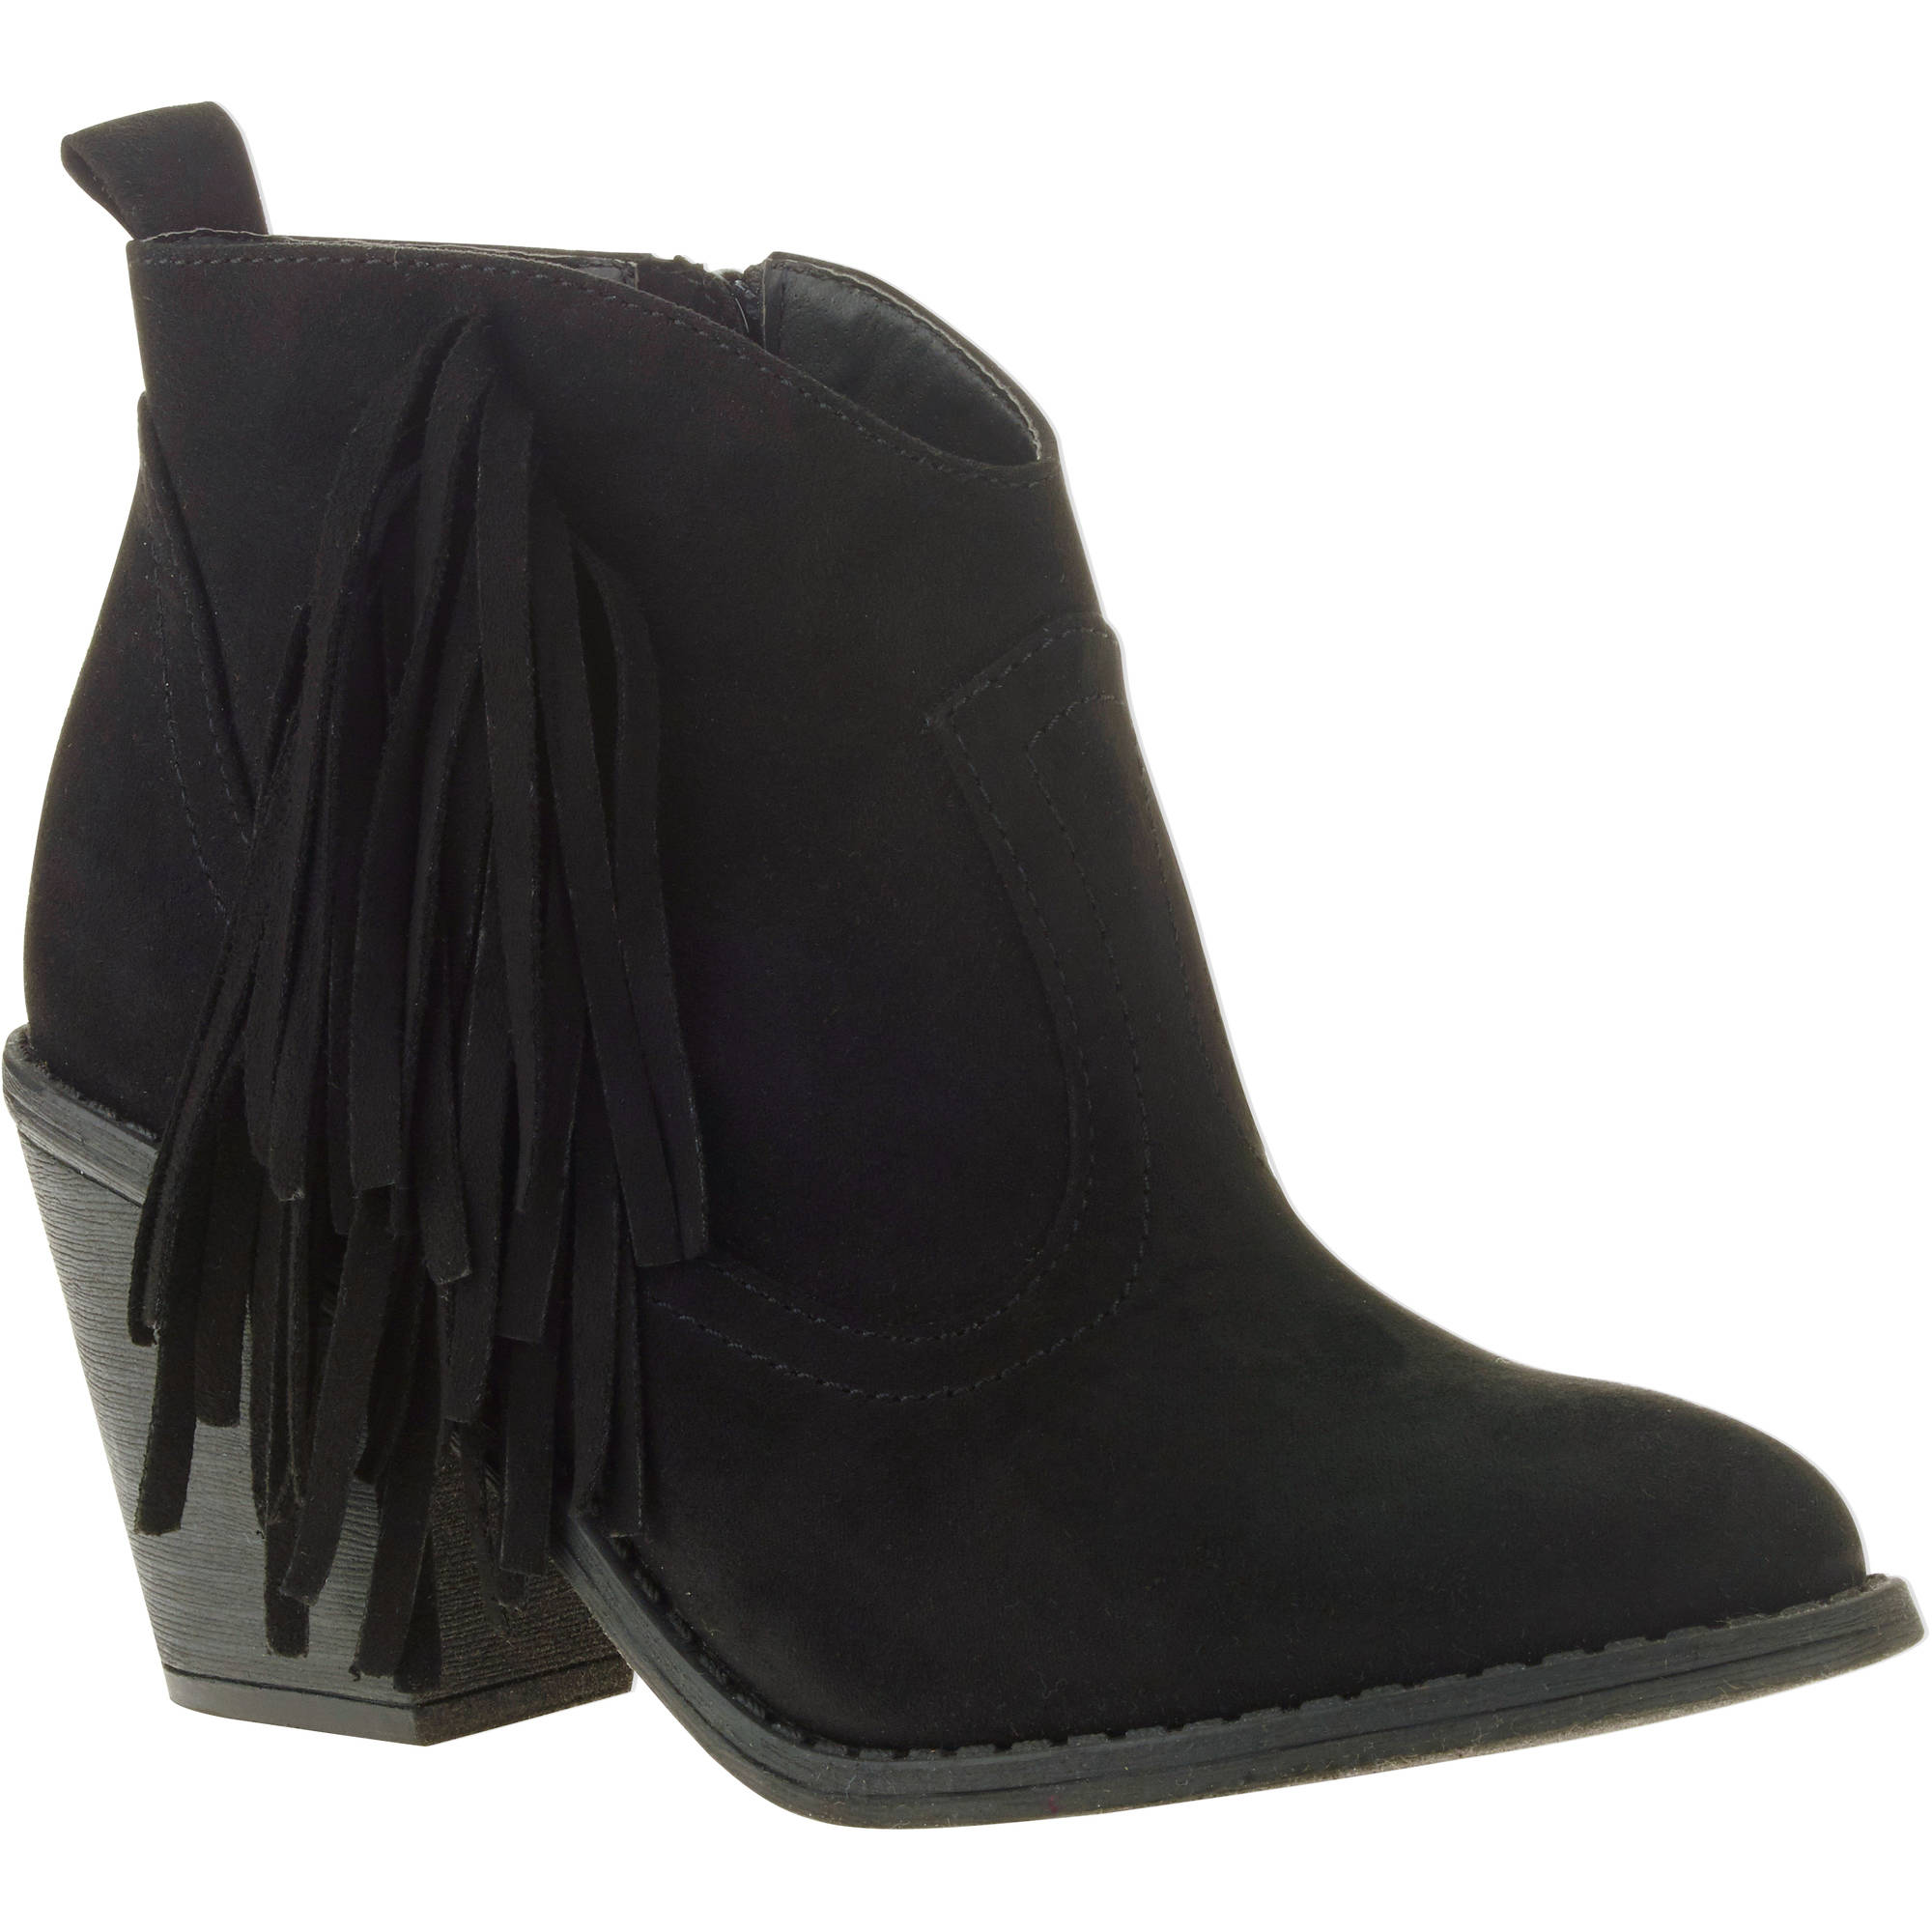 Faded Glory Women's Heel Boot - Walmart.com